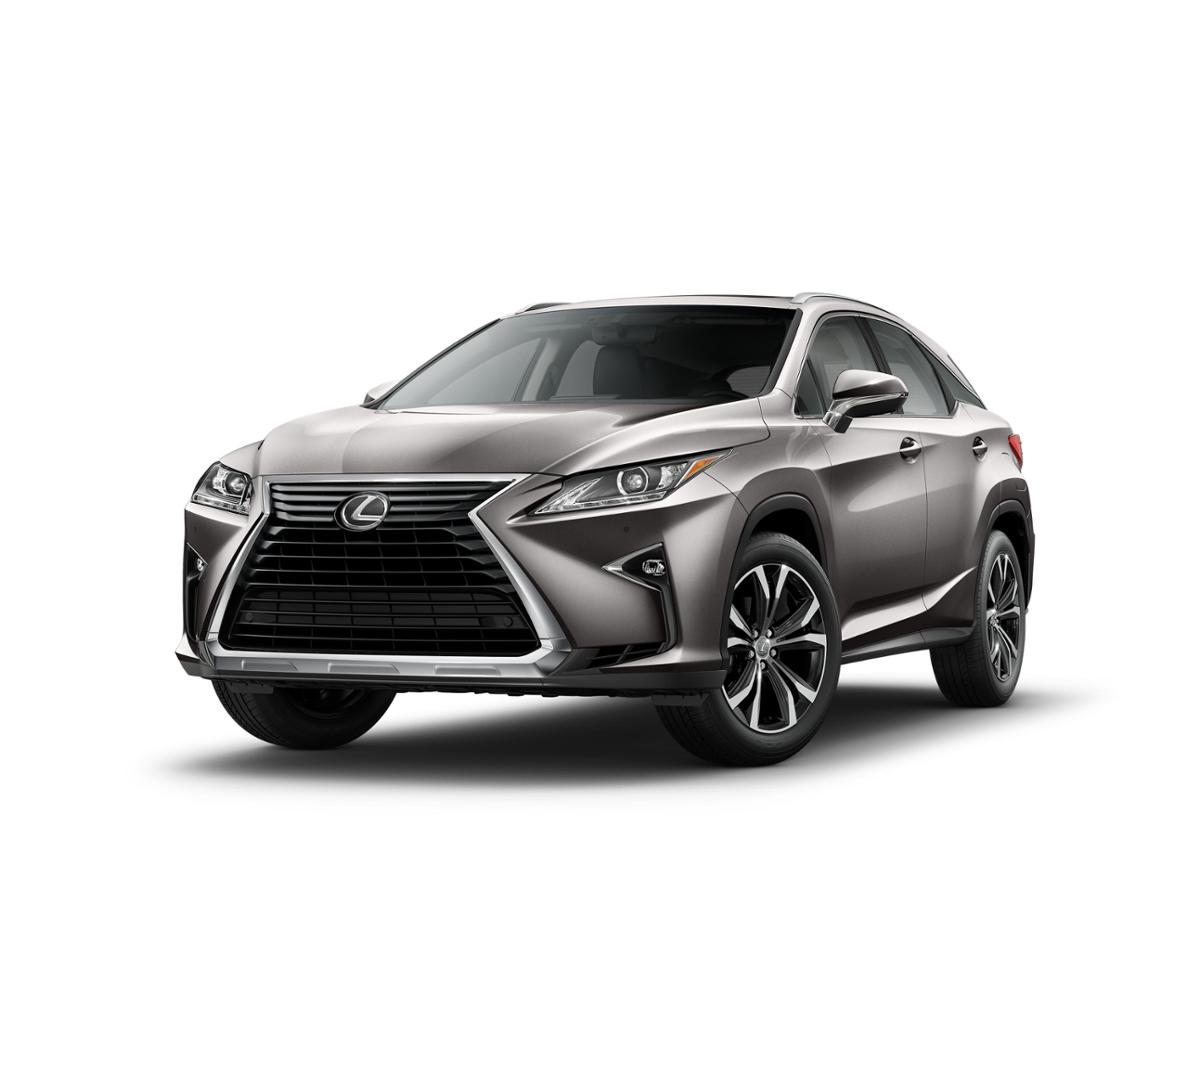 2019 Lexus RX 350 Vehicle Photo in Las Vegas, NV 89146